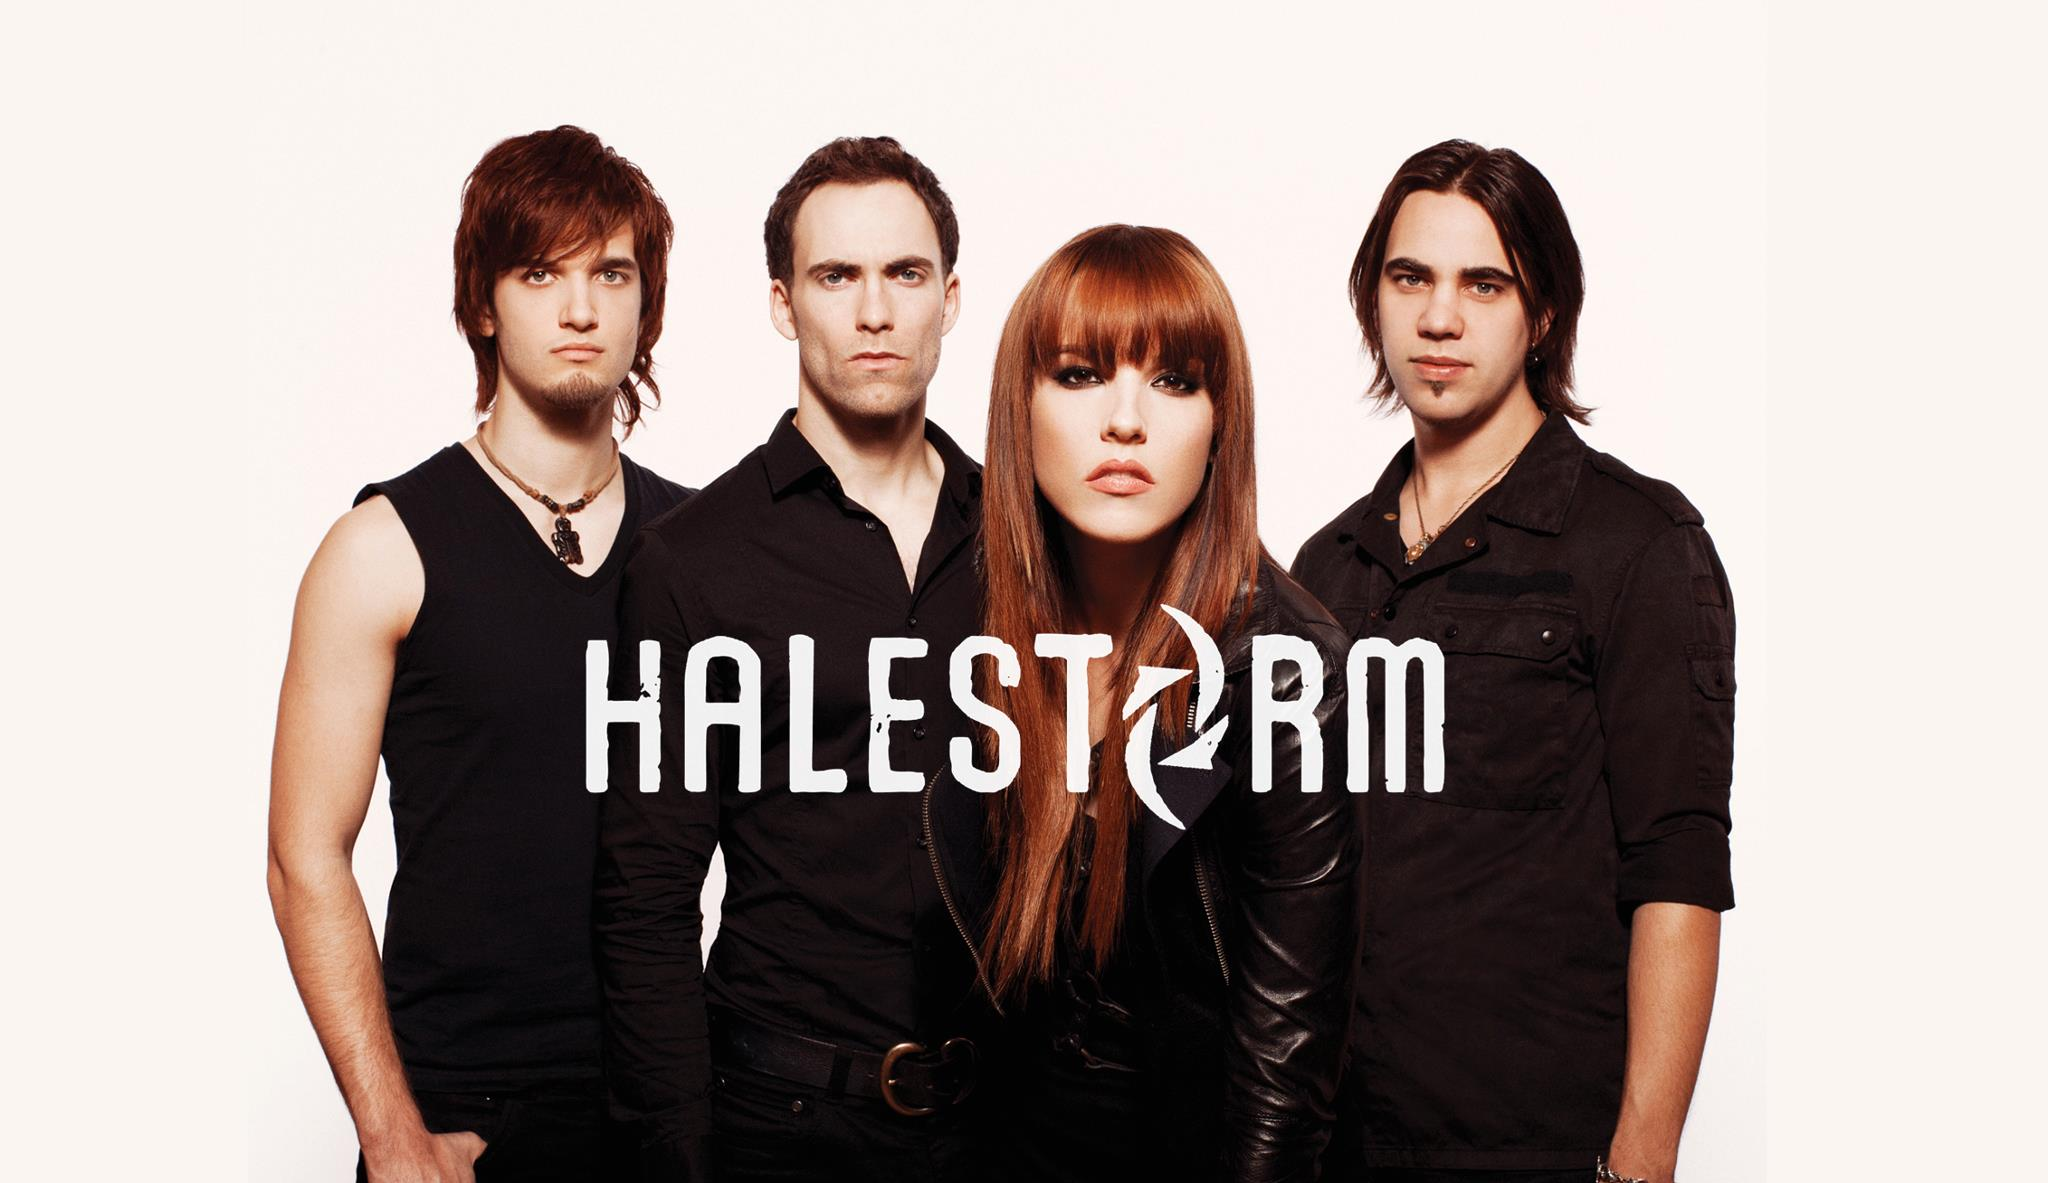 HALESTORM Vicious (2018) Hard Rock USA 47262410